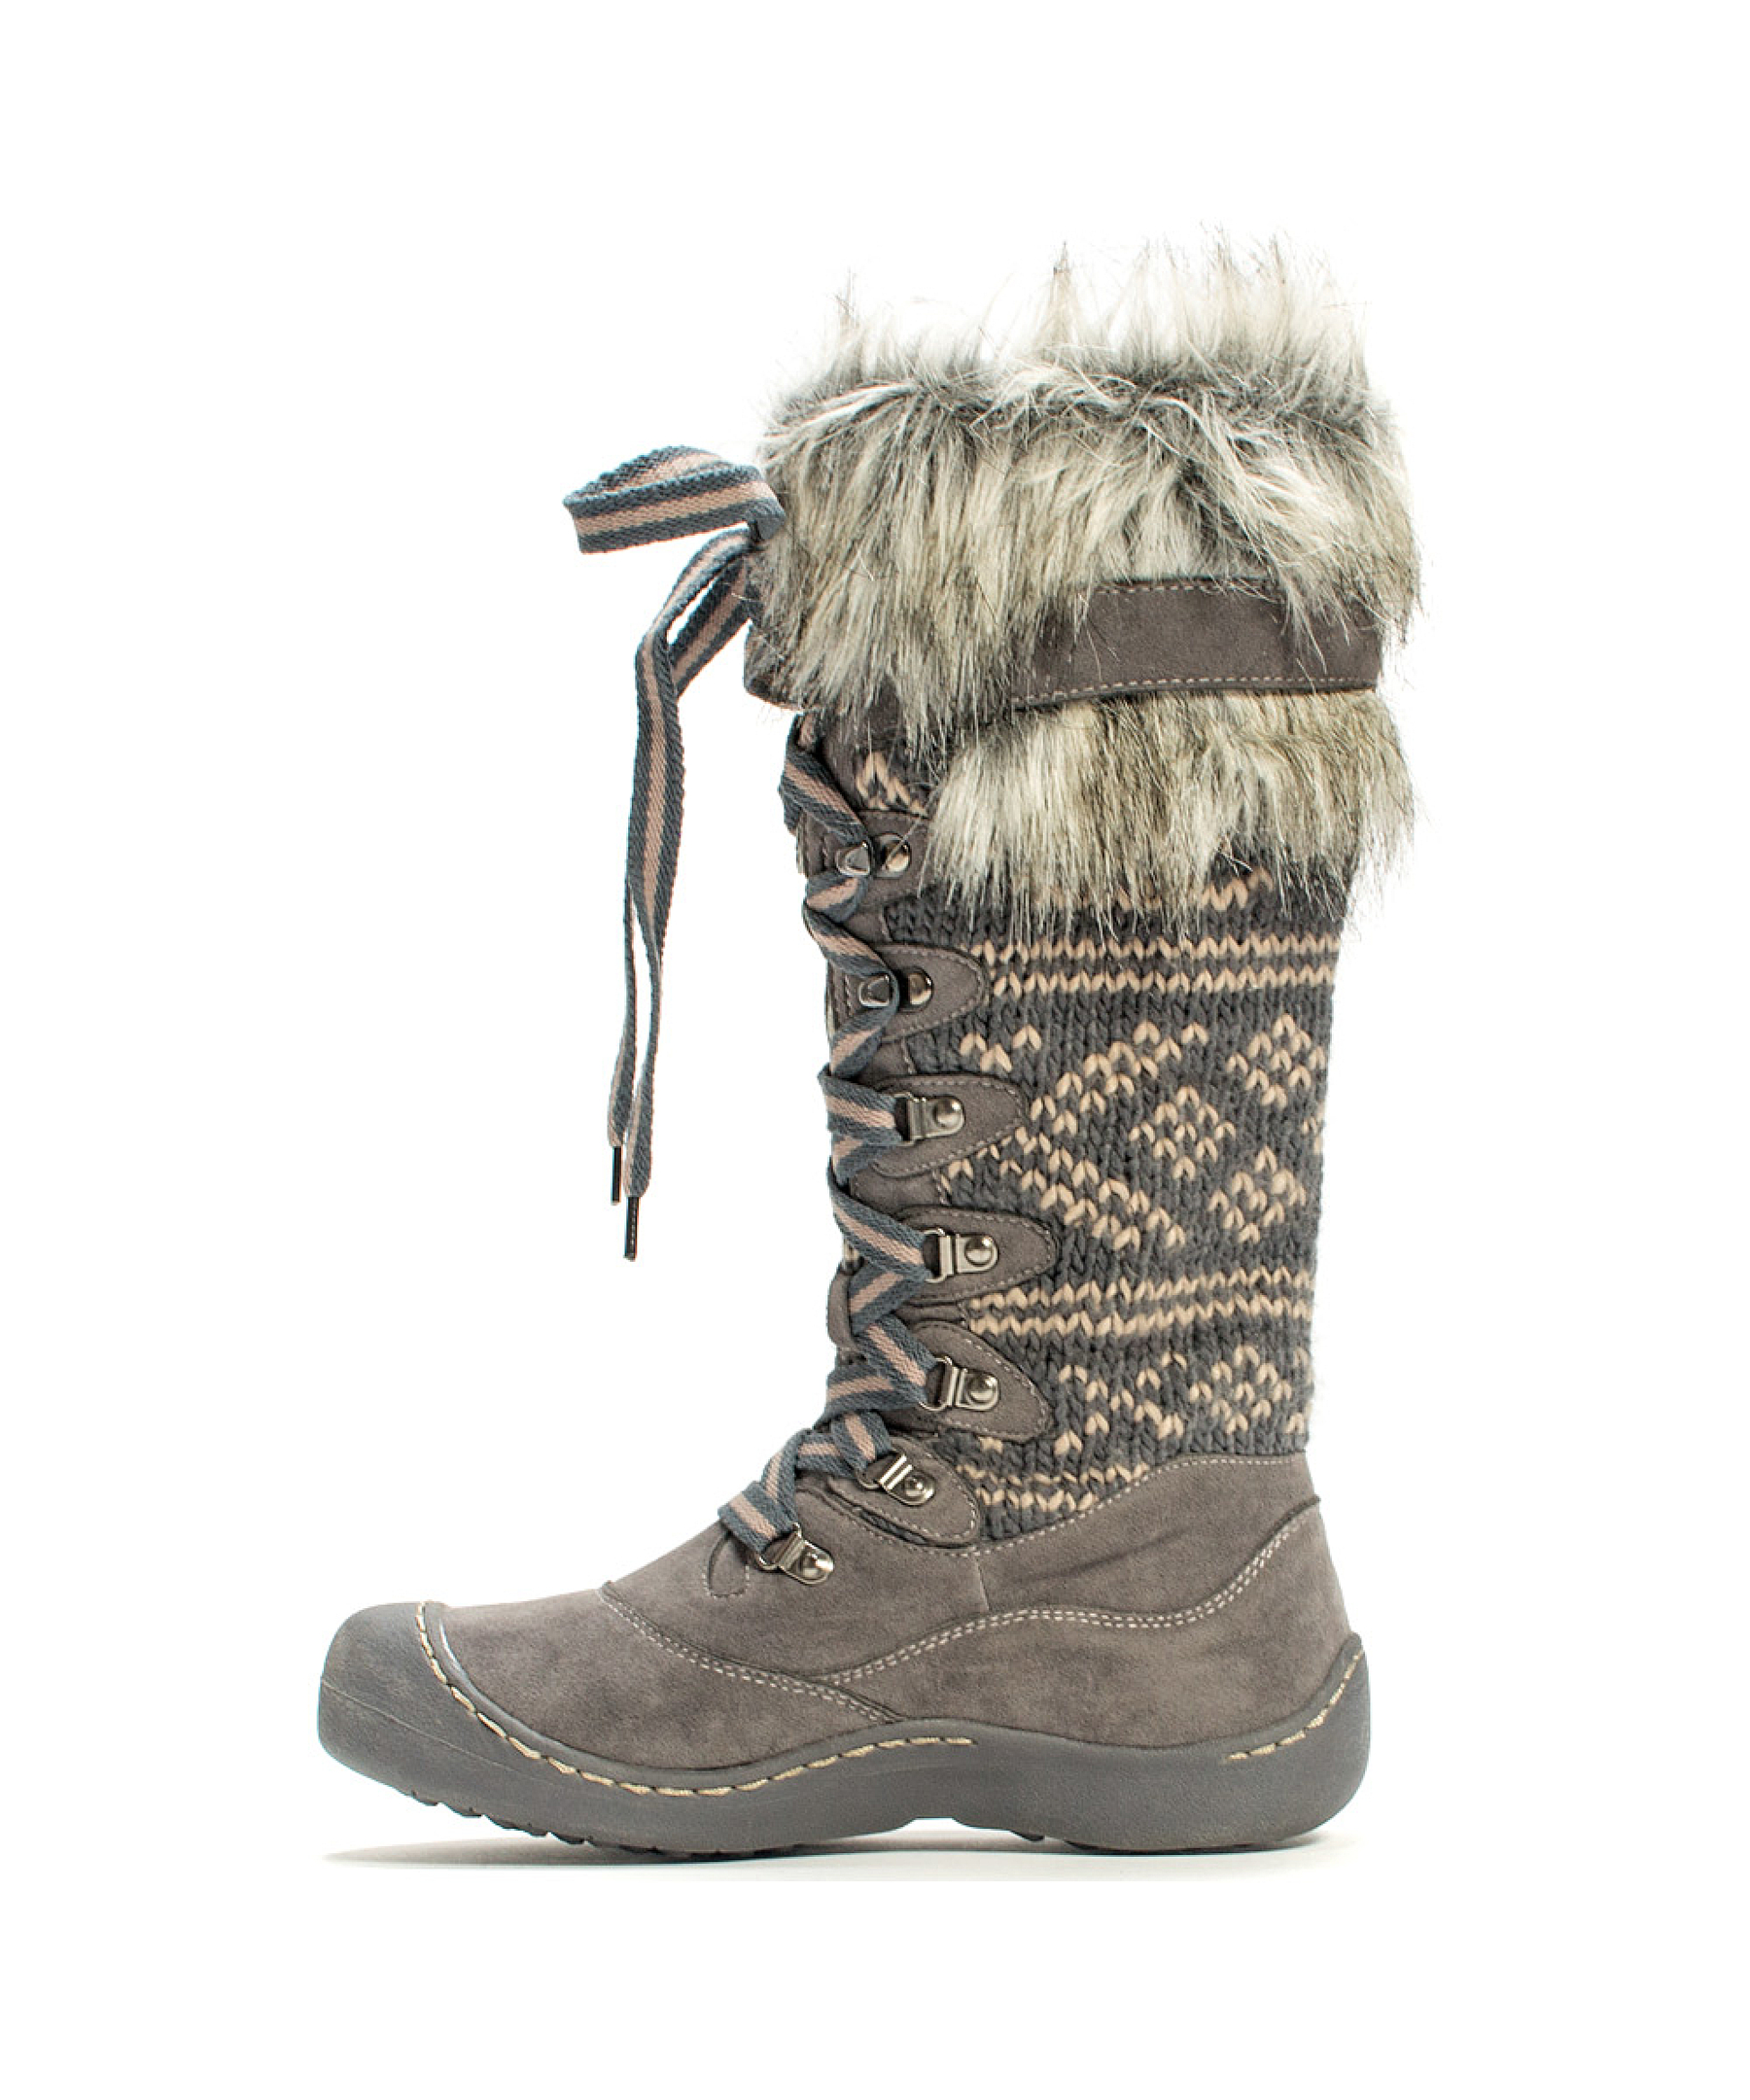 Lyst Muk Luks Women S Gwen Tall Lace Up Snow Boot In Gray